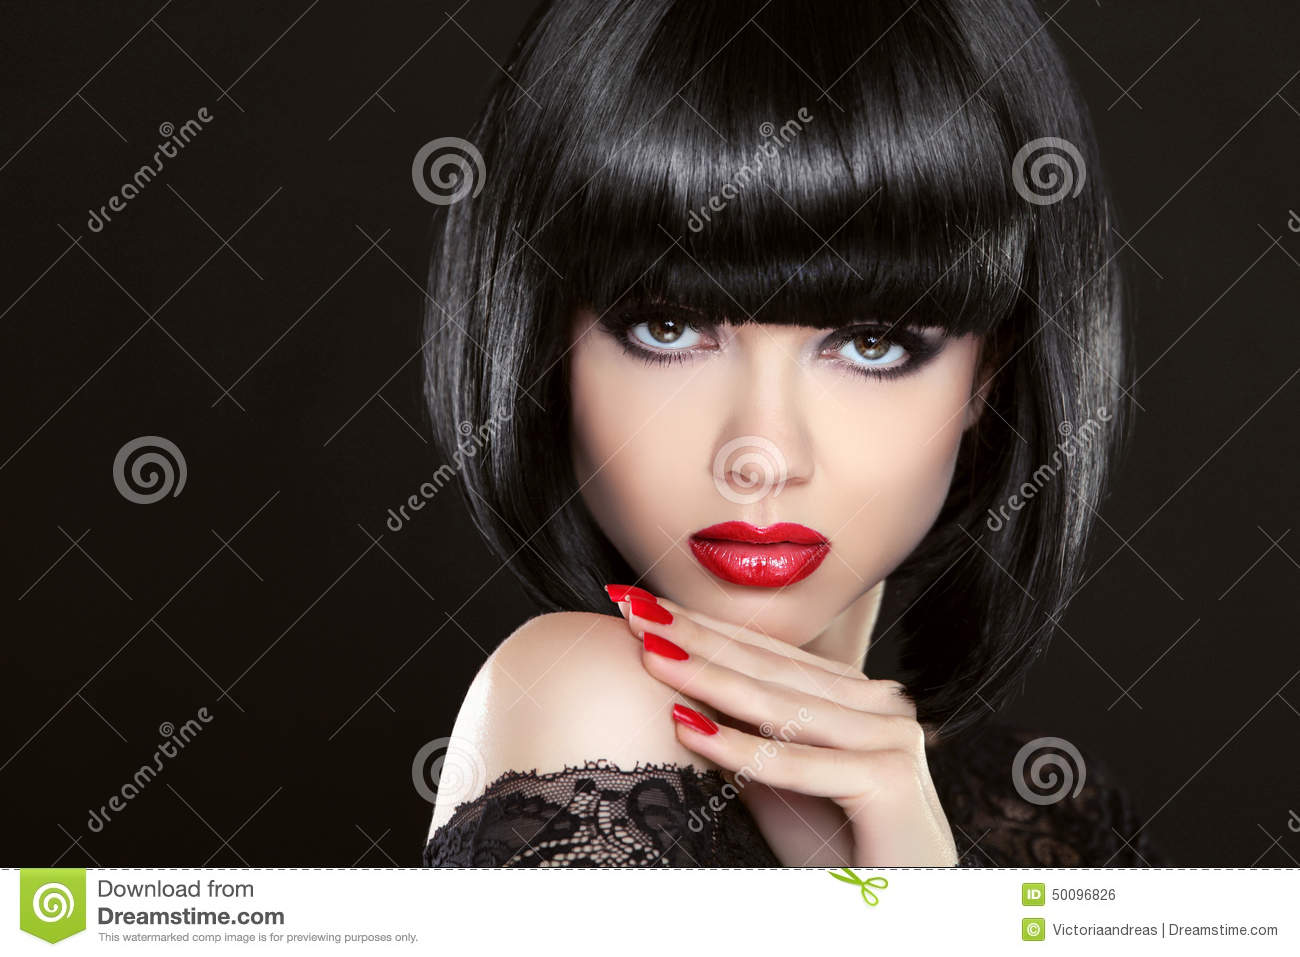 Stare. Fashion Model Girl Face, Beauty Woman Makeup And